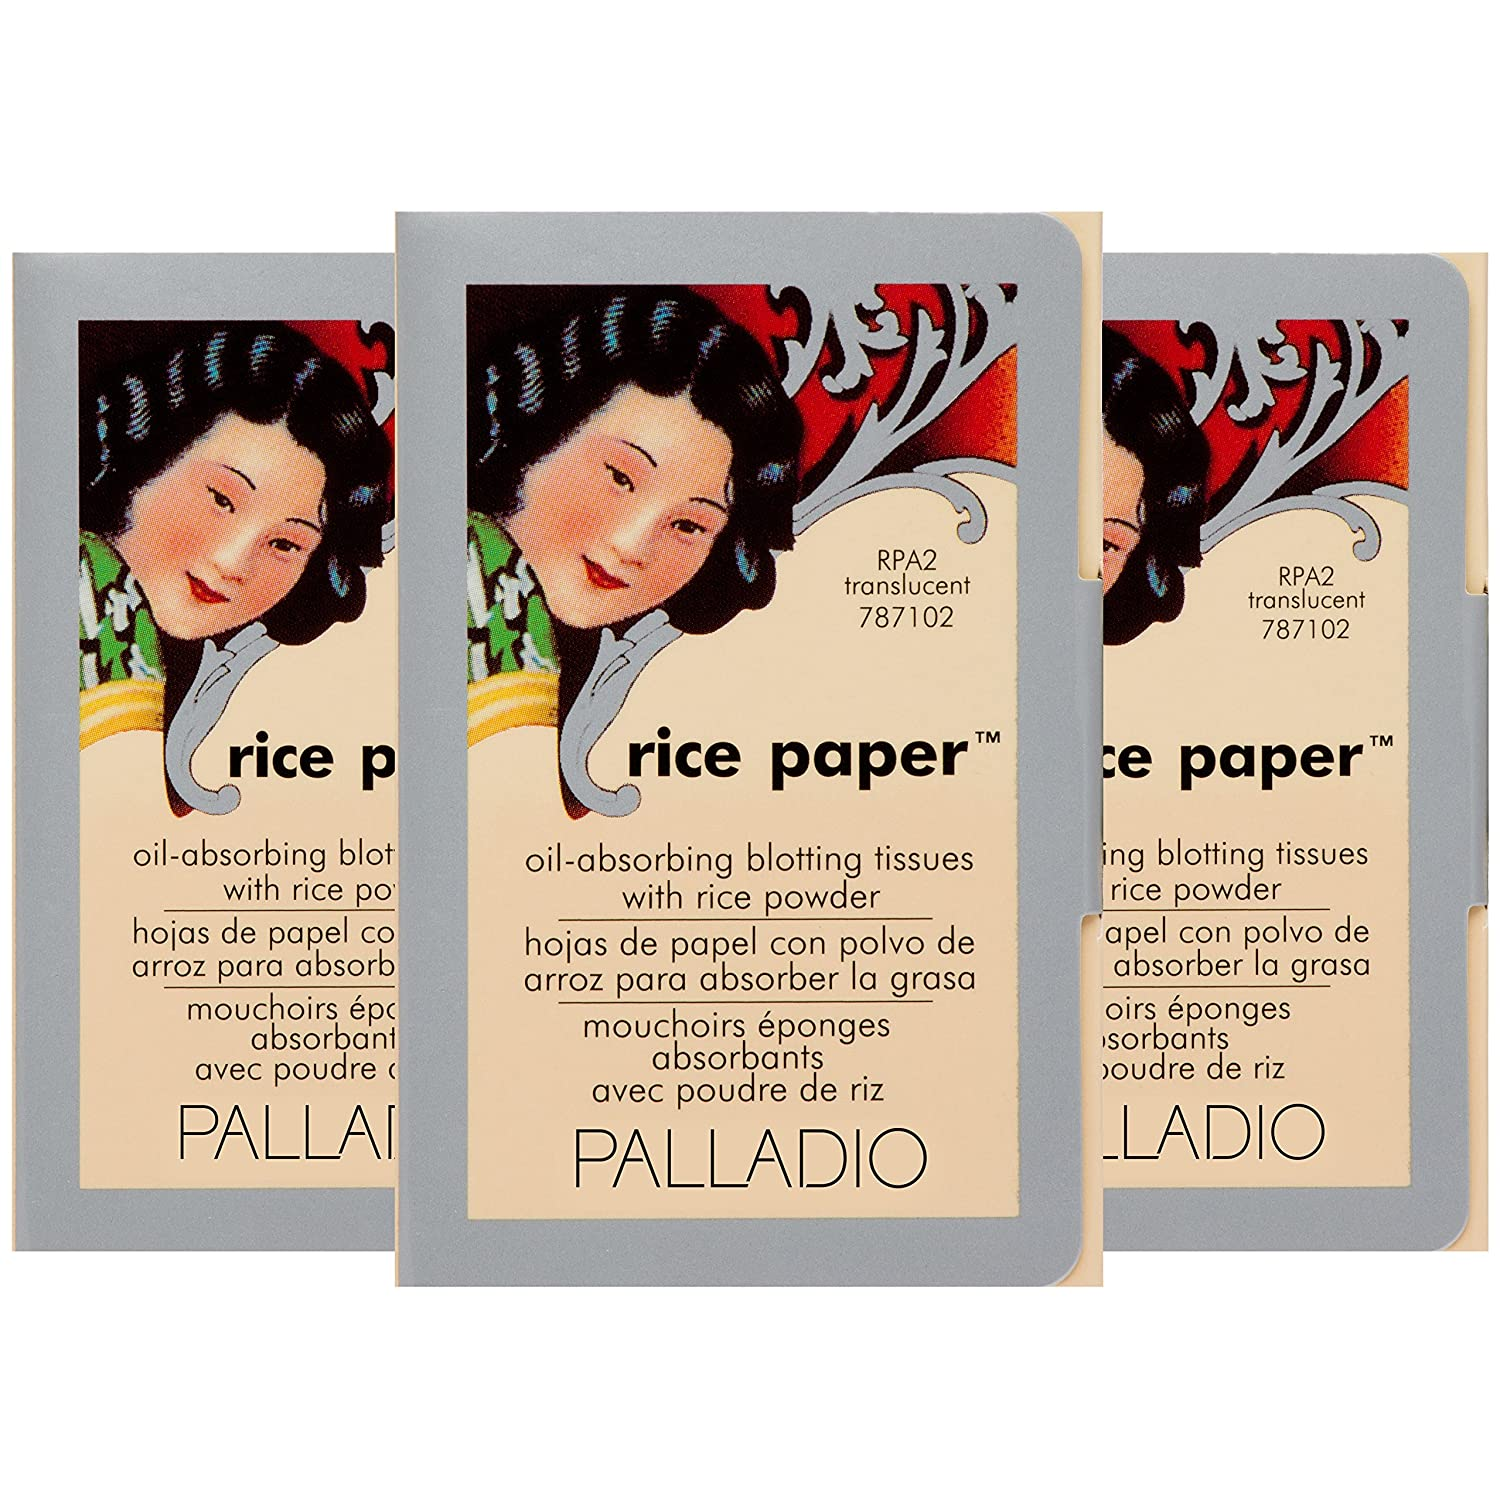 Palladio Rice Paper Tissues, Translucent, 40 Sheets (Pack Of 3), Face Blotting Sheets With Natural Rice Powder Absorbs Oil, Helps Skin Stay Looking Fresh And... by Palladio